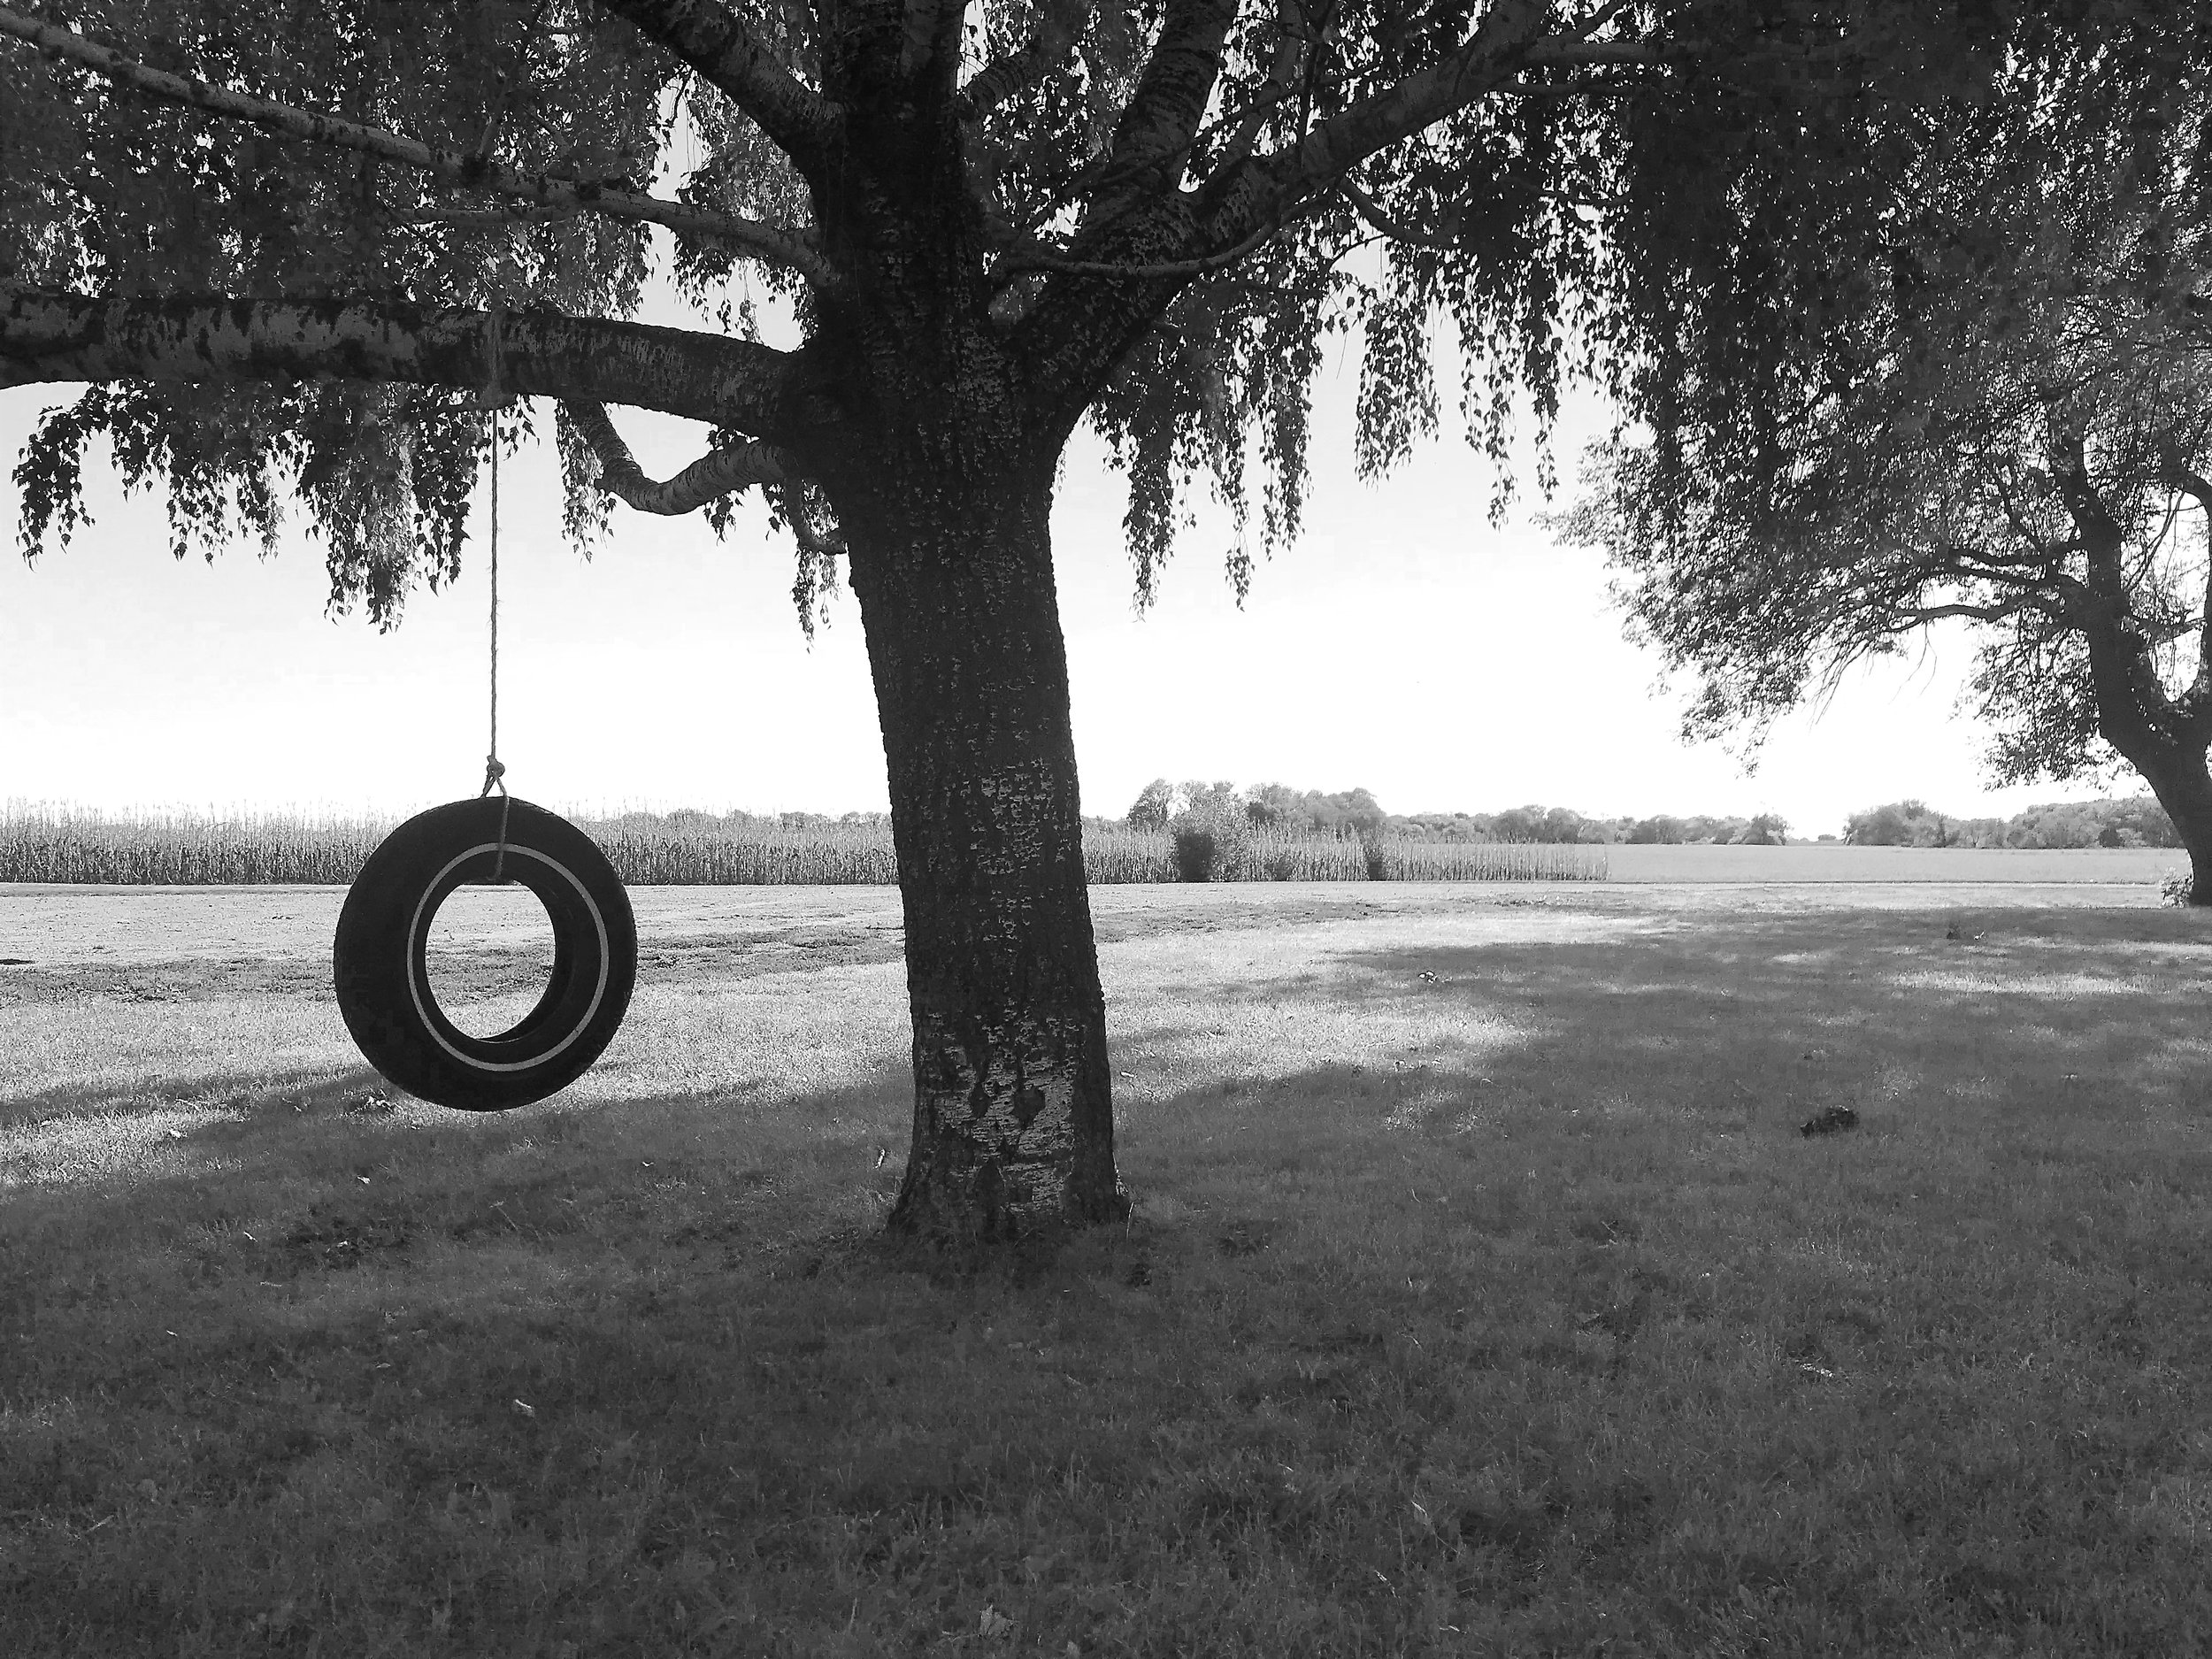 """LIVE INSPIRED - A number of years ago, I began public speaking about coping with change and other inspirational topics. Many mornings I draw inspiration from the tire swing in my front yard, I post inspirational messages called """"weather reports"""" to my Instagram as a way to start the day with a positive mindset."""